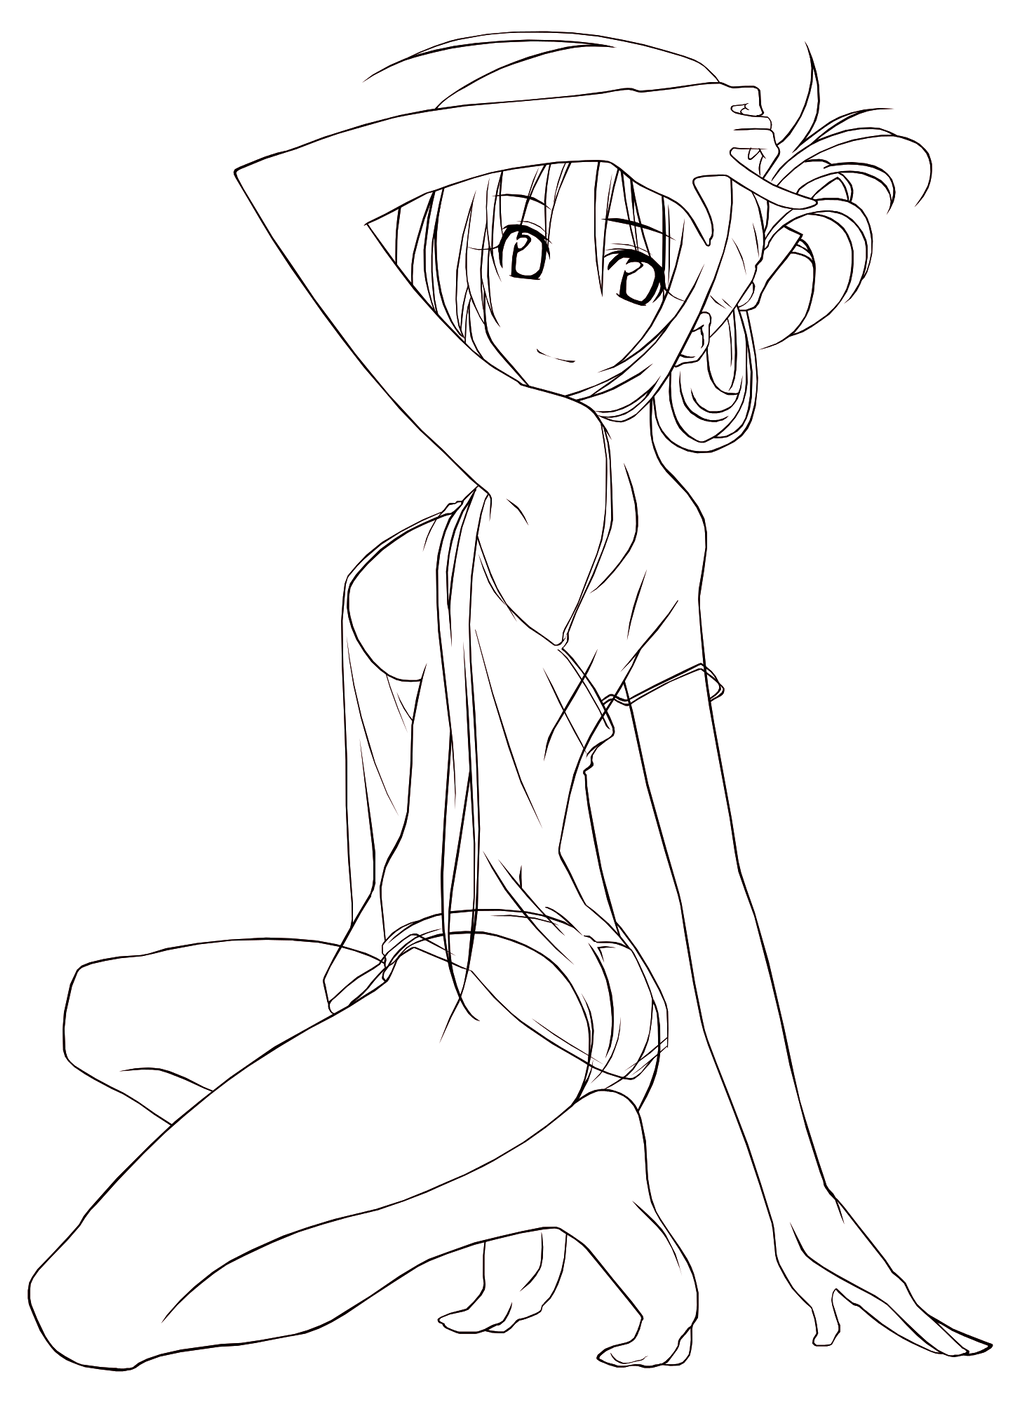 Line Drawing Dancer : Sword dancer lineart by cerberusyuri on deviantart